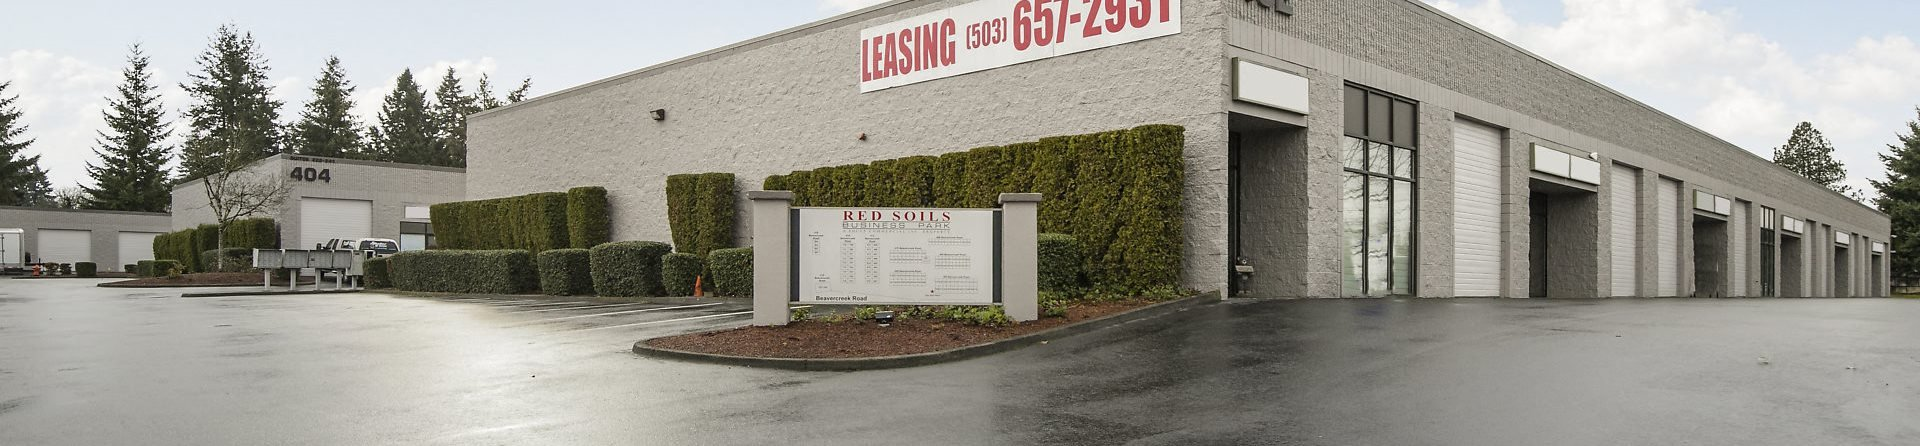 Red Soils Business Park Exterior Leasing Banner